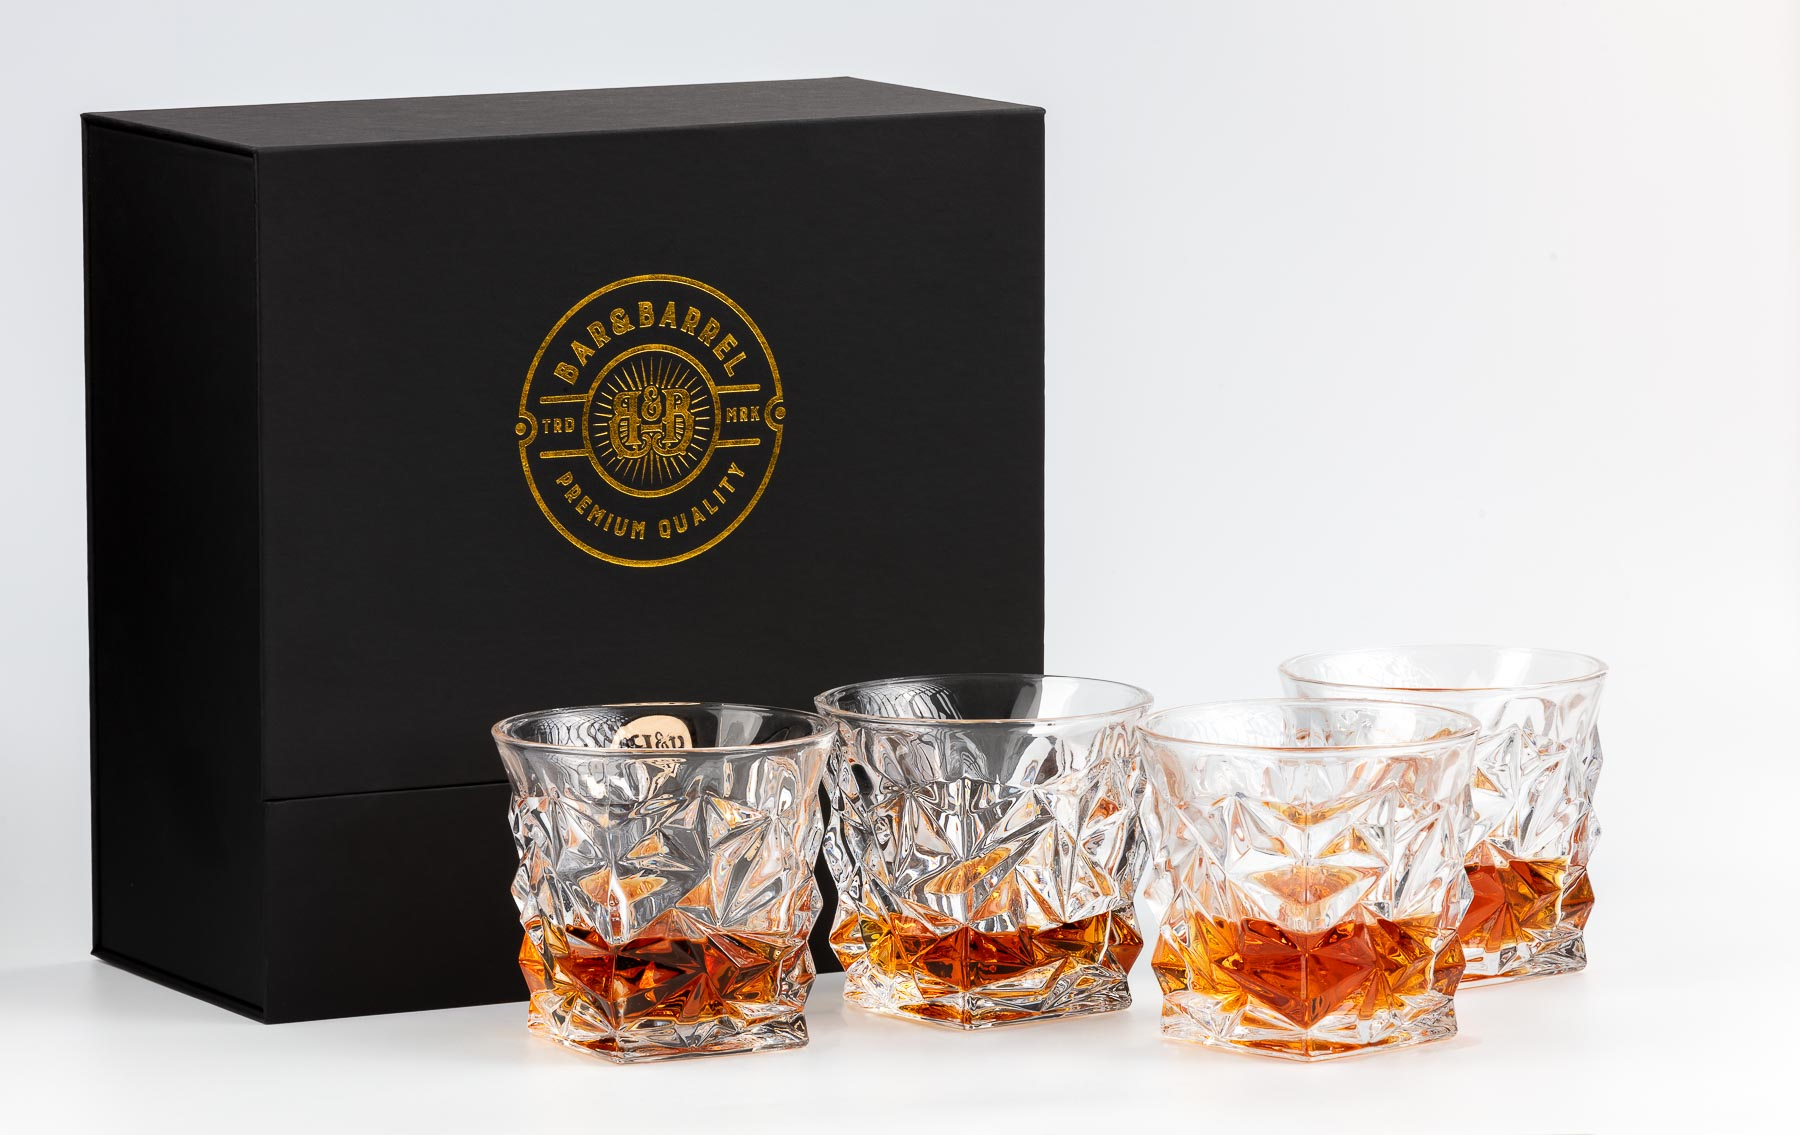 Bar&Barrel Whisky Cup set four detailed beside box -Product photography for Amazon and website